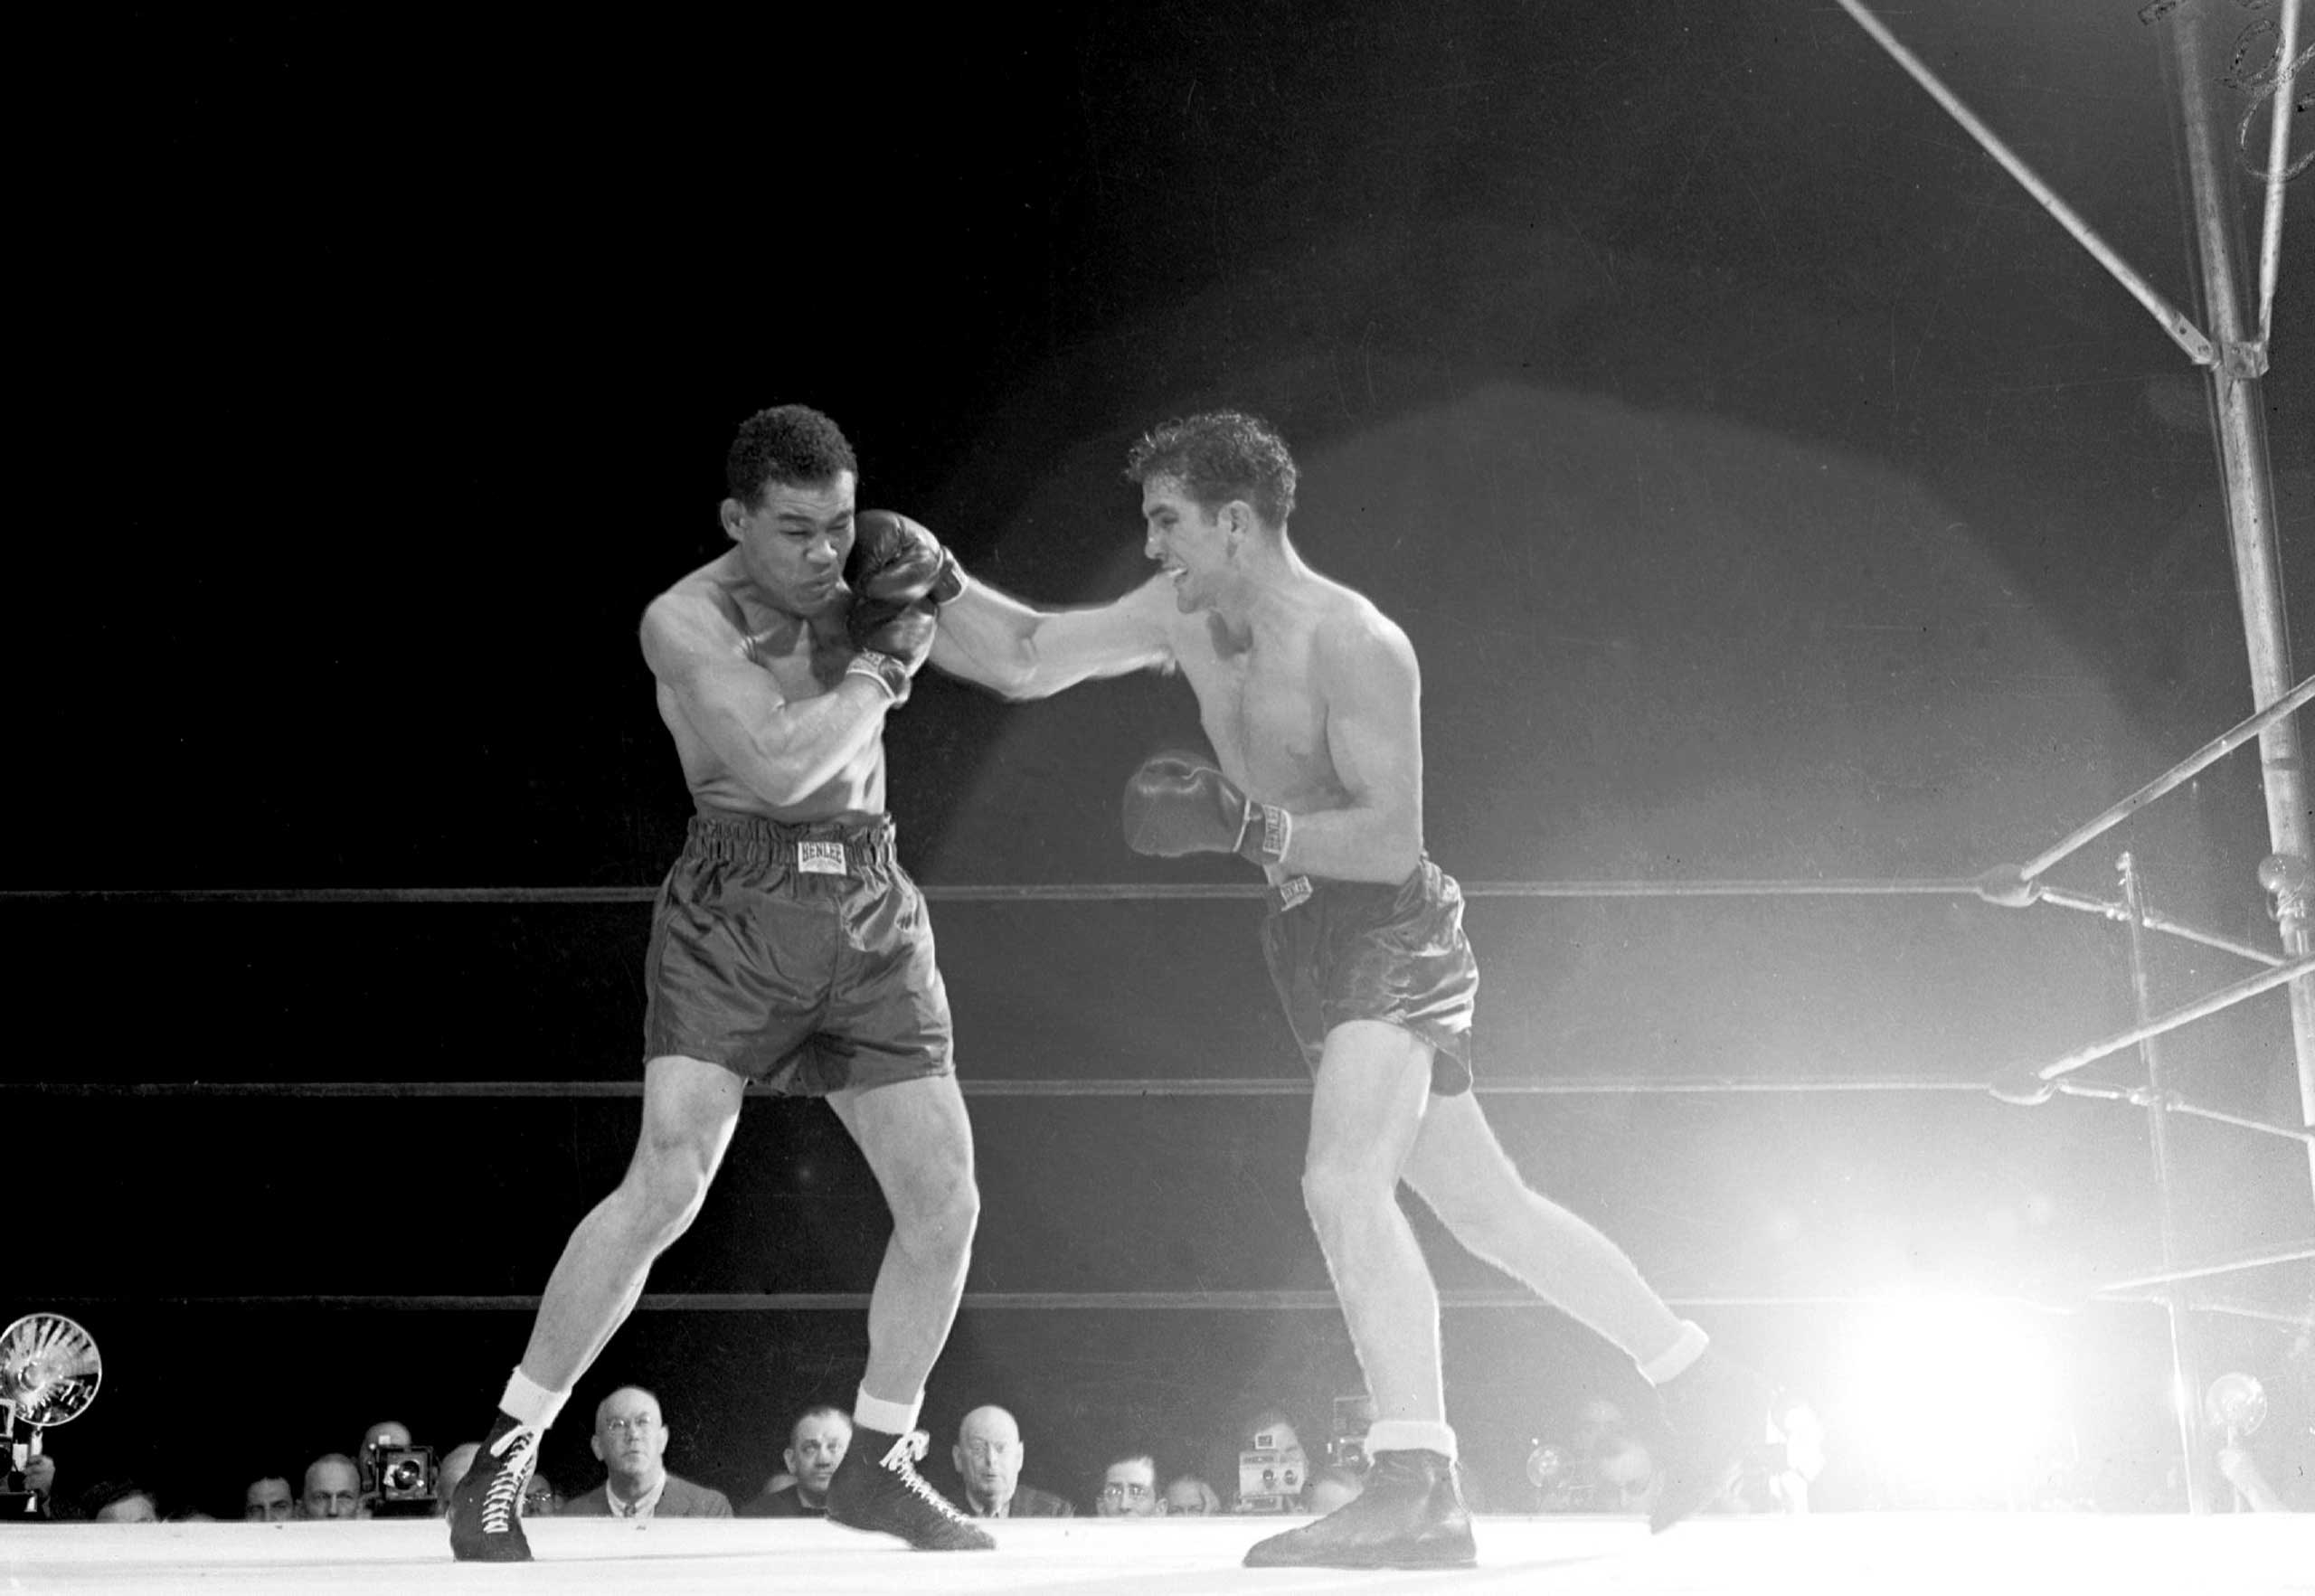 "<b>Joe Louis vs. Billy Conn, June 18, 1941</b> Legendary heavyweight champion Louis took on the Pittsburgh Kid Conn at the Polo Grounds. Giving away at least 25 pounds, Conn was the heavy (or should that be light?) underdog but proceeded to outbox Louis. Boxing historian Bert Sugar wrote that, ""Conn could block punches with his arms, elbows and gloves, and further nullify his opponents' punches by 'rolling' with them."" By the eighth round, dehydration had set in on Louis and by the 12th he was completely exhausted with Conn ahead on two of the scorecards (Louis later admitted in his autobiography that he rested up toward the end of his training schedule because ""I didn't want them to say in the papers that I beat up on some little guy""). Conn got cocky in the 13th and tried to finish Louis off; but by going for the KO, he exposed his impressive defense, was caught by his opponent and was counted out with two seconds left in the round. Let that serve as a lesson to underdogs everywhere."